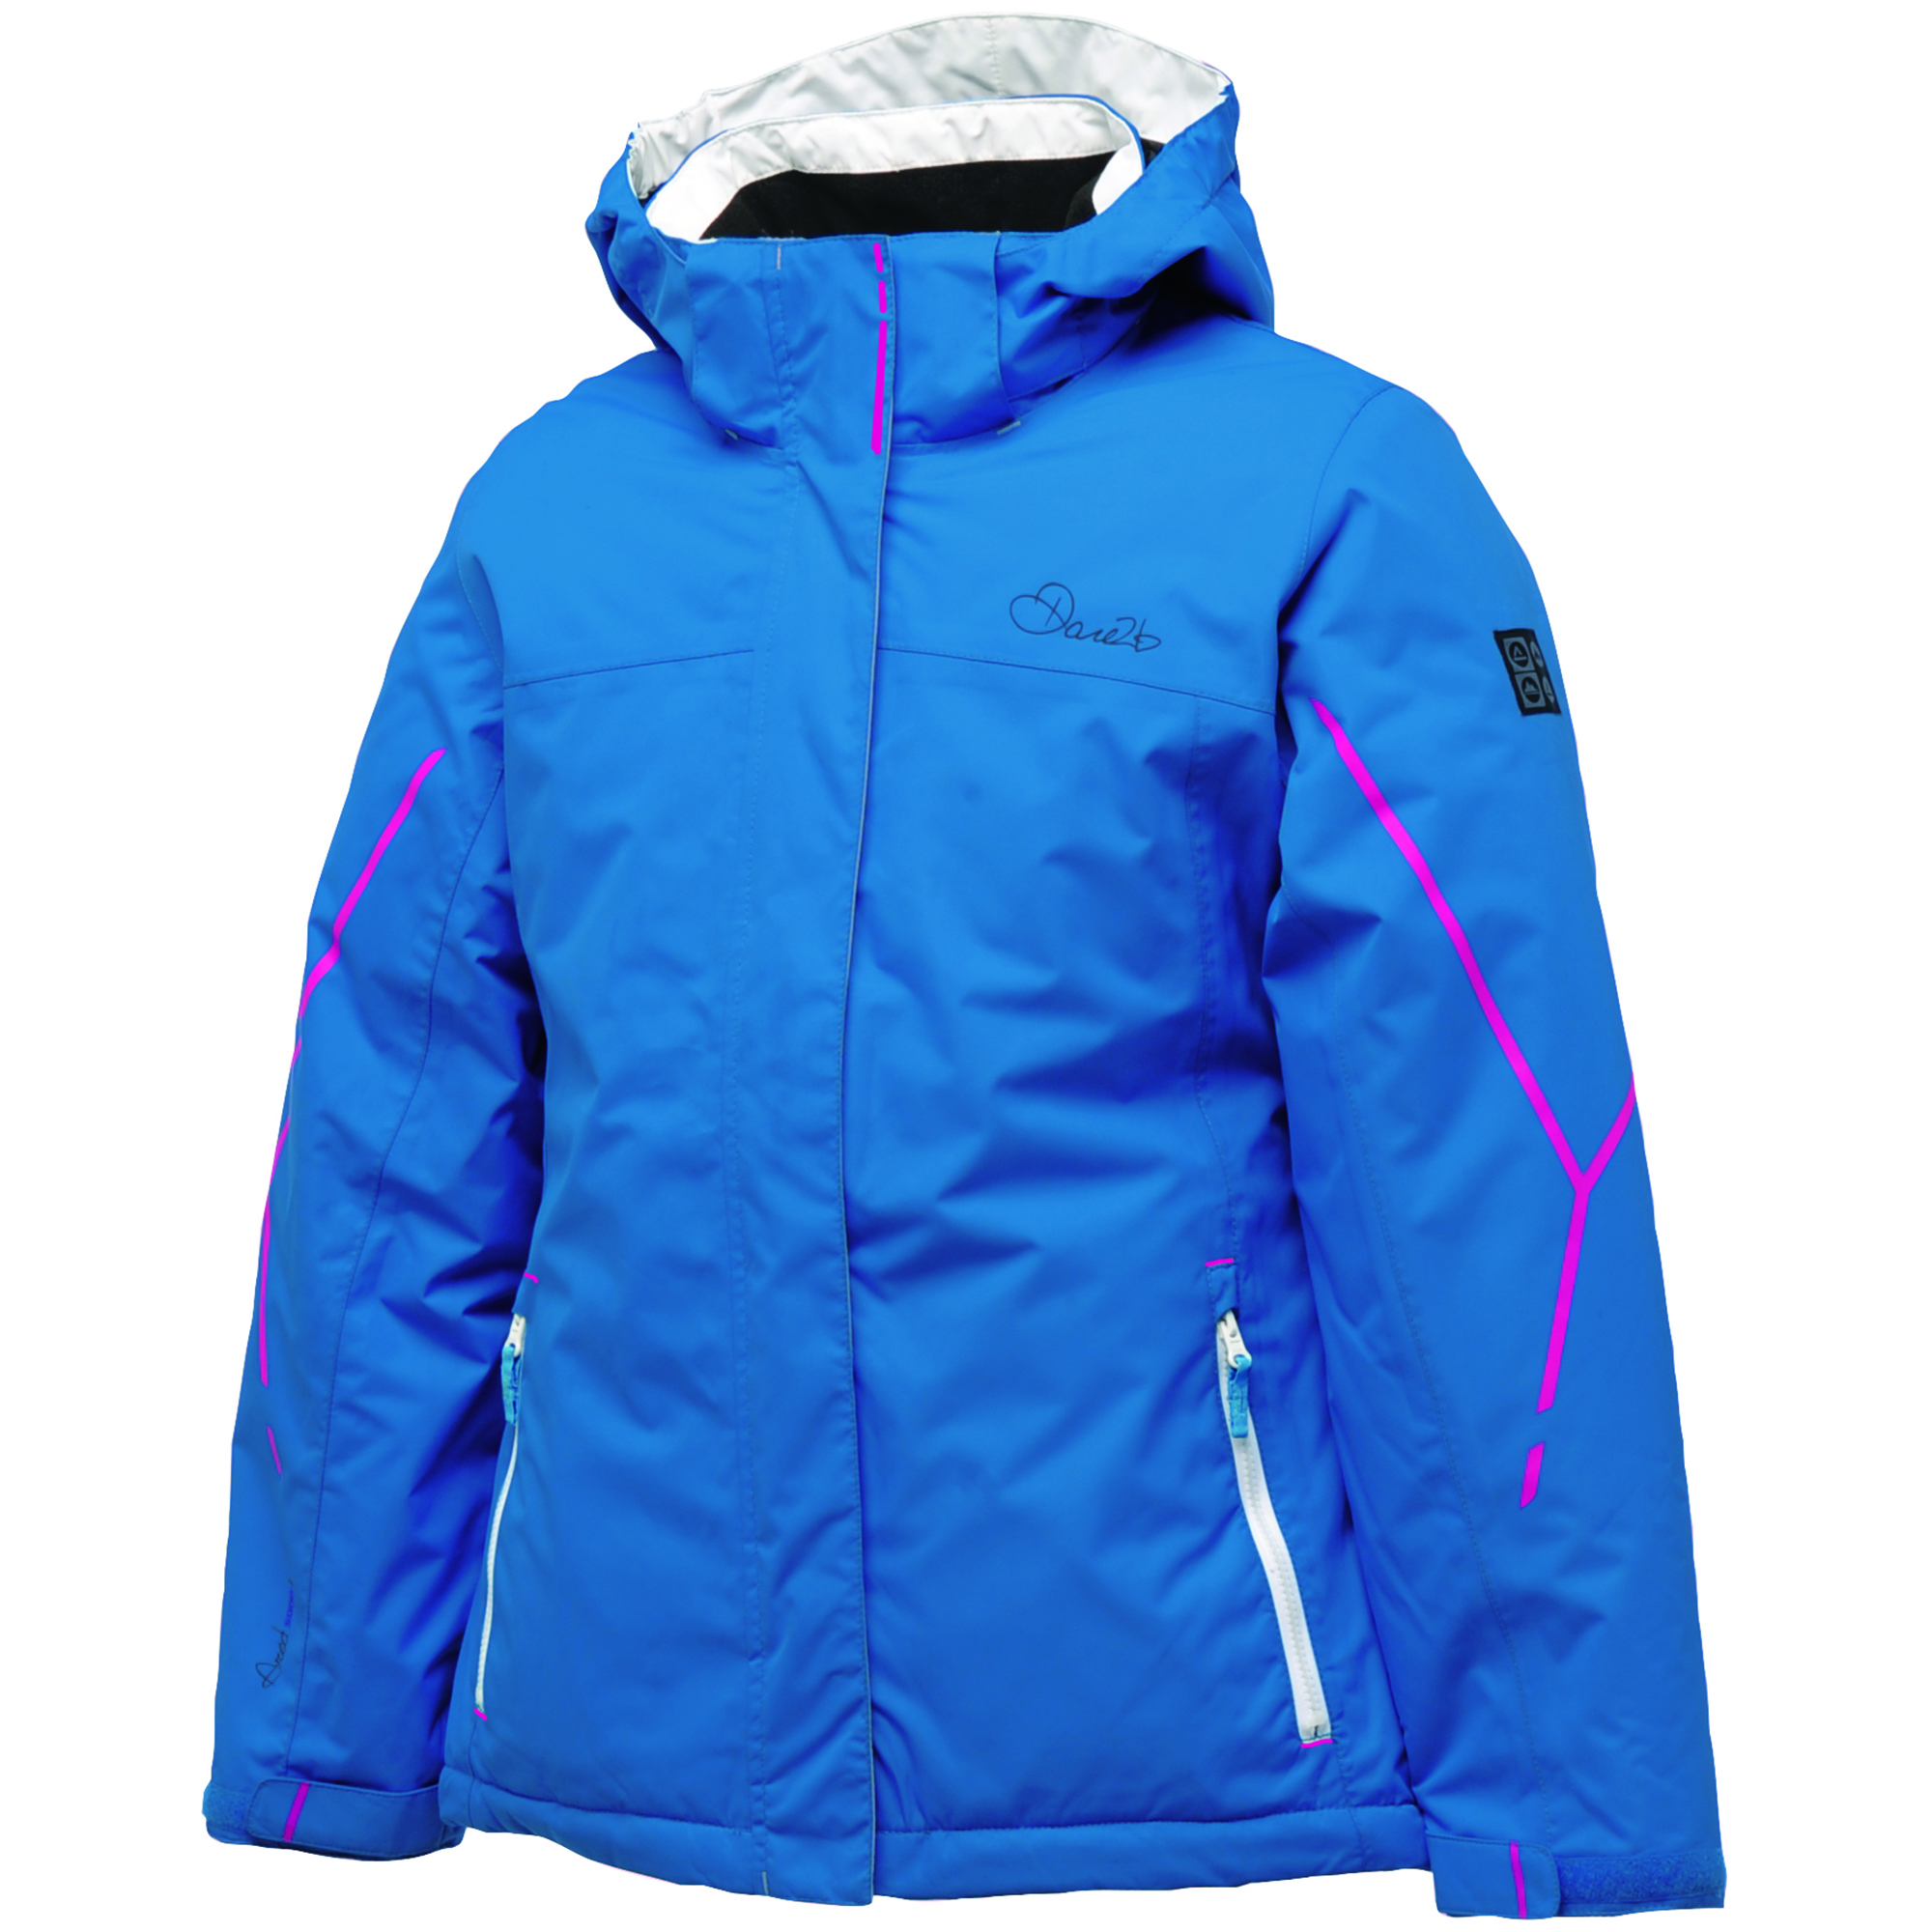 Parody Girls Dare2b Ski Jacket | Ski Clothes Ski Wear and Ski ...